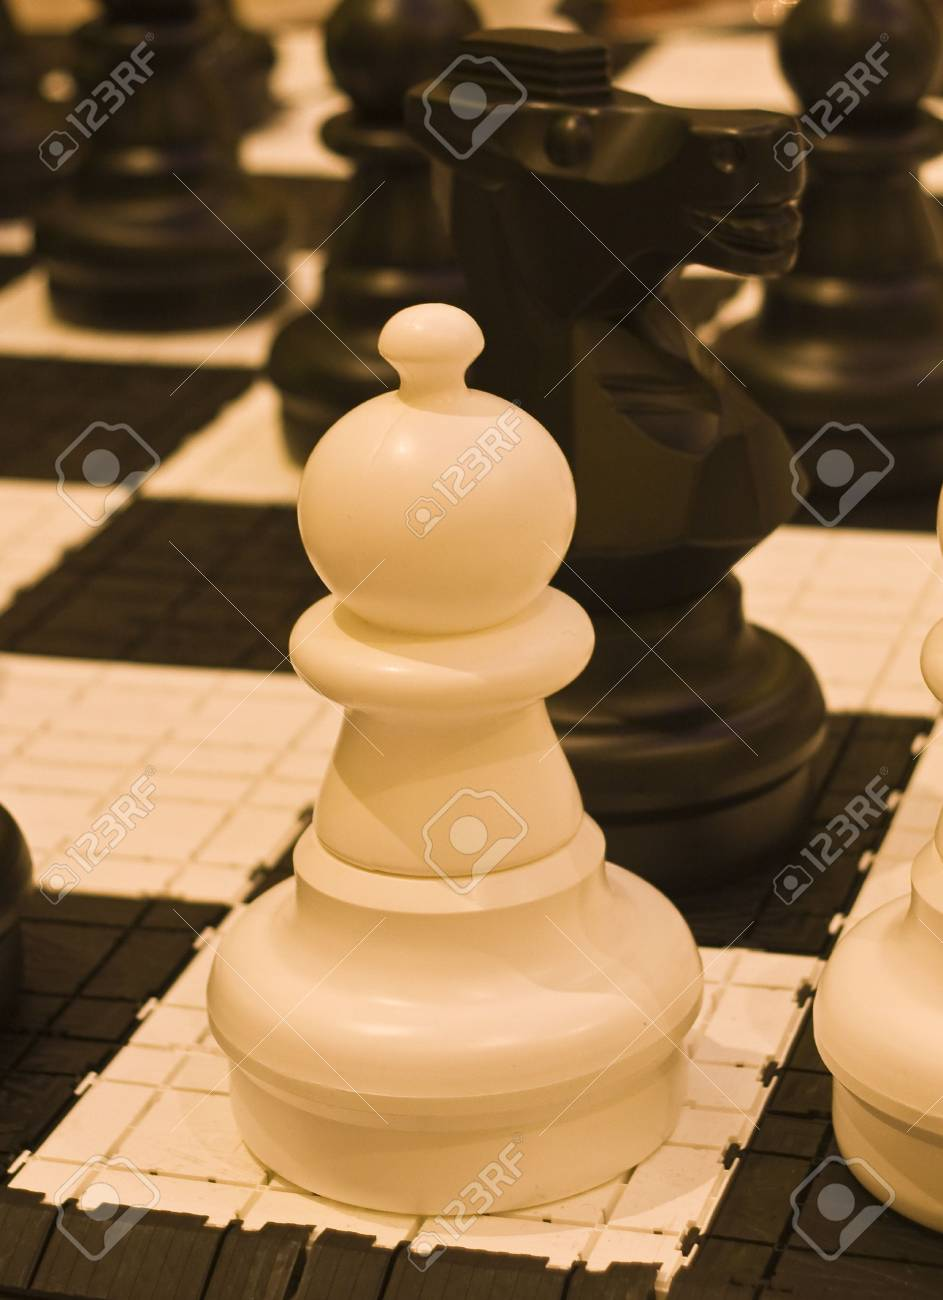 A white pawn in a chess game Stock Photo - 4678690